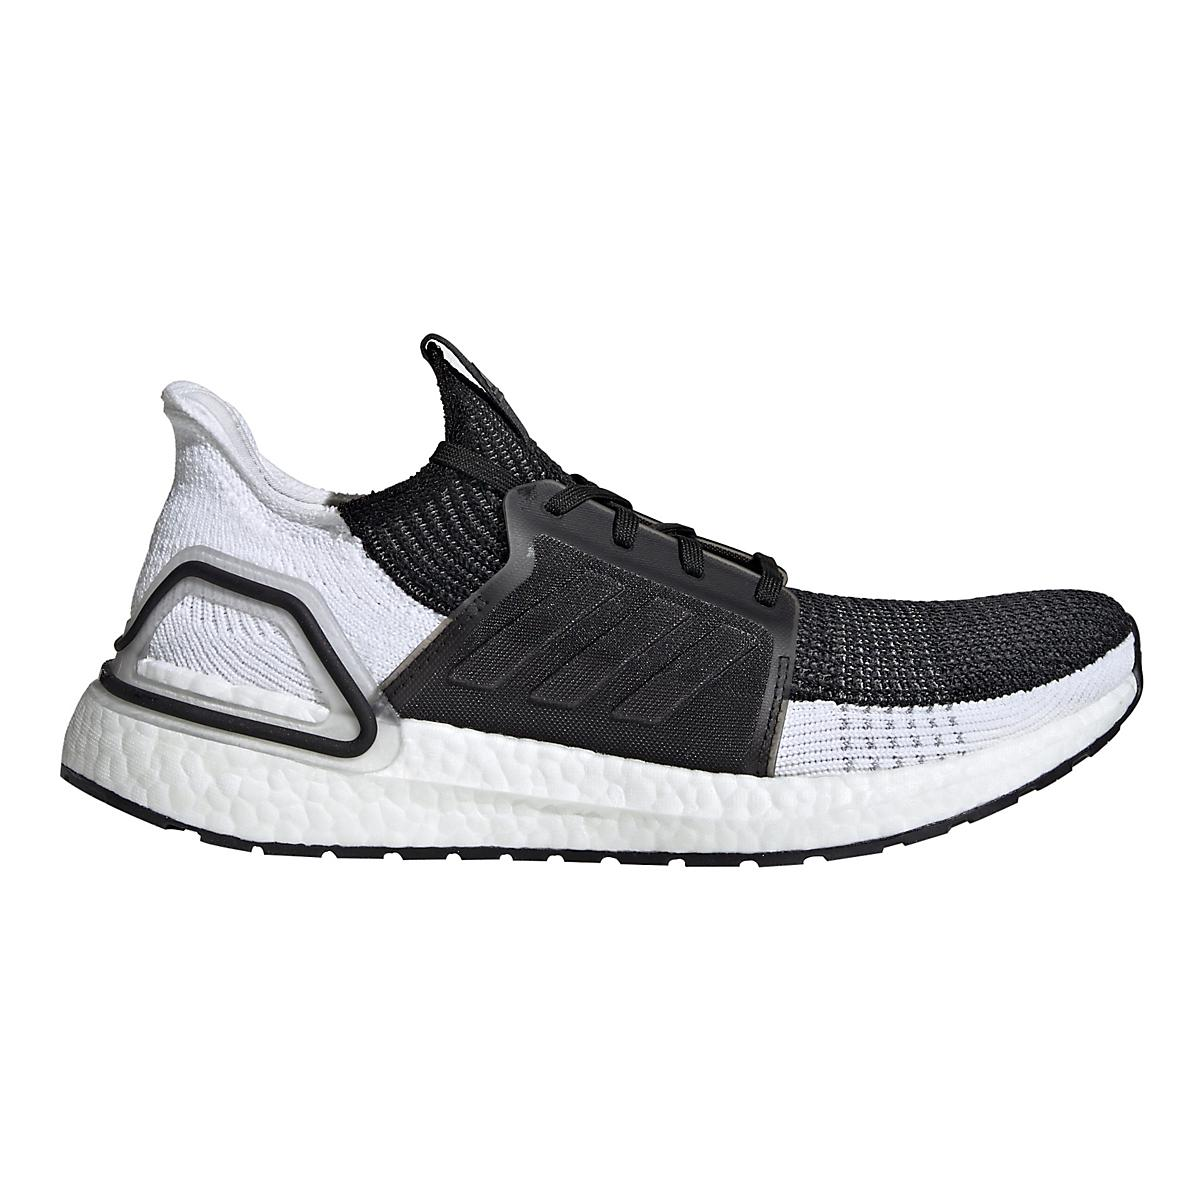 equivocado Diariamente violencia  Mens adidas Ultra Boost 19 Running Shoe at Road Runner Sports